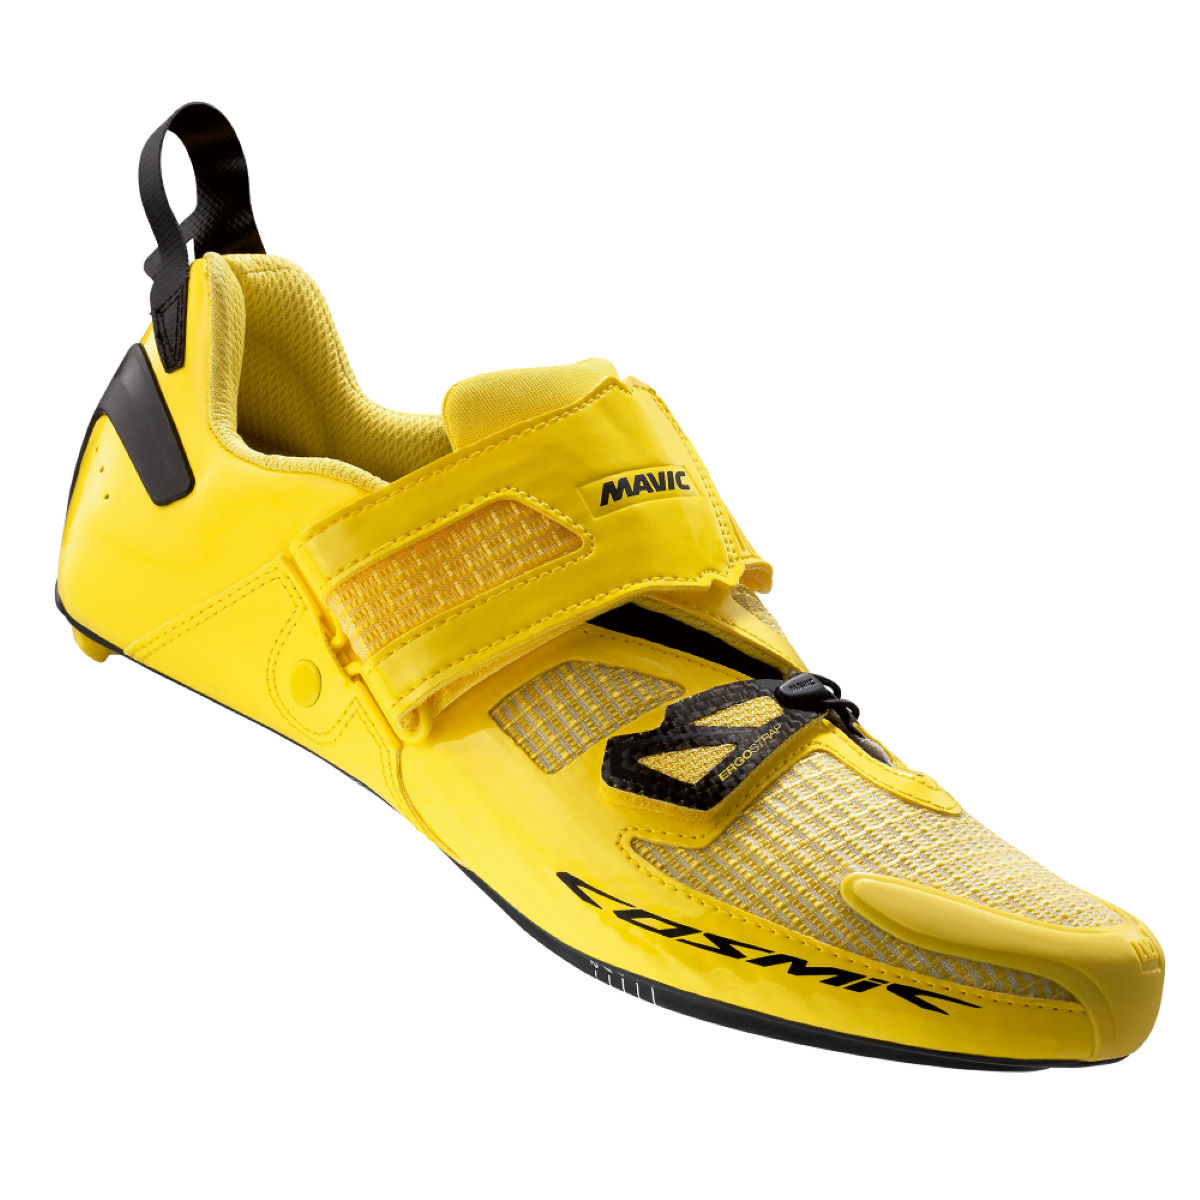 Chaussures de triathlon Mavic Cosmic Ultimate - 5 Jaune